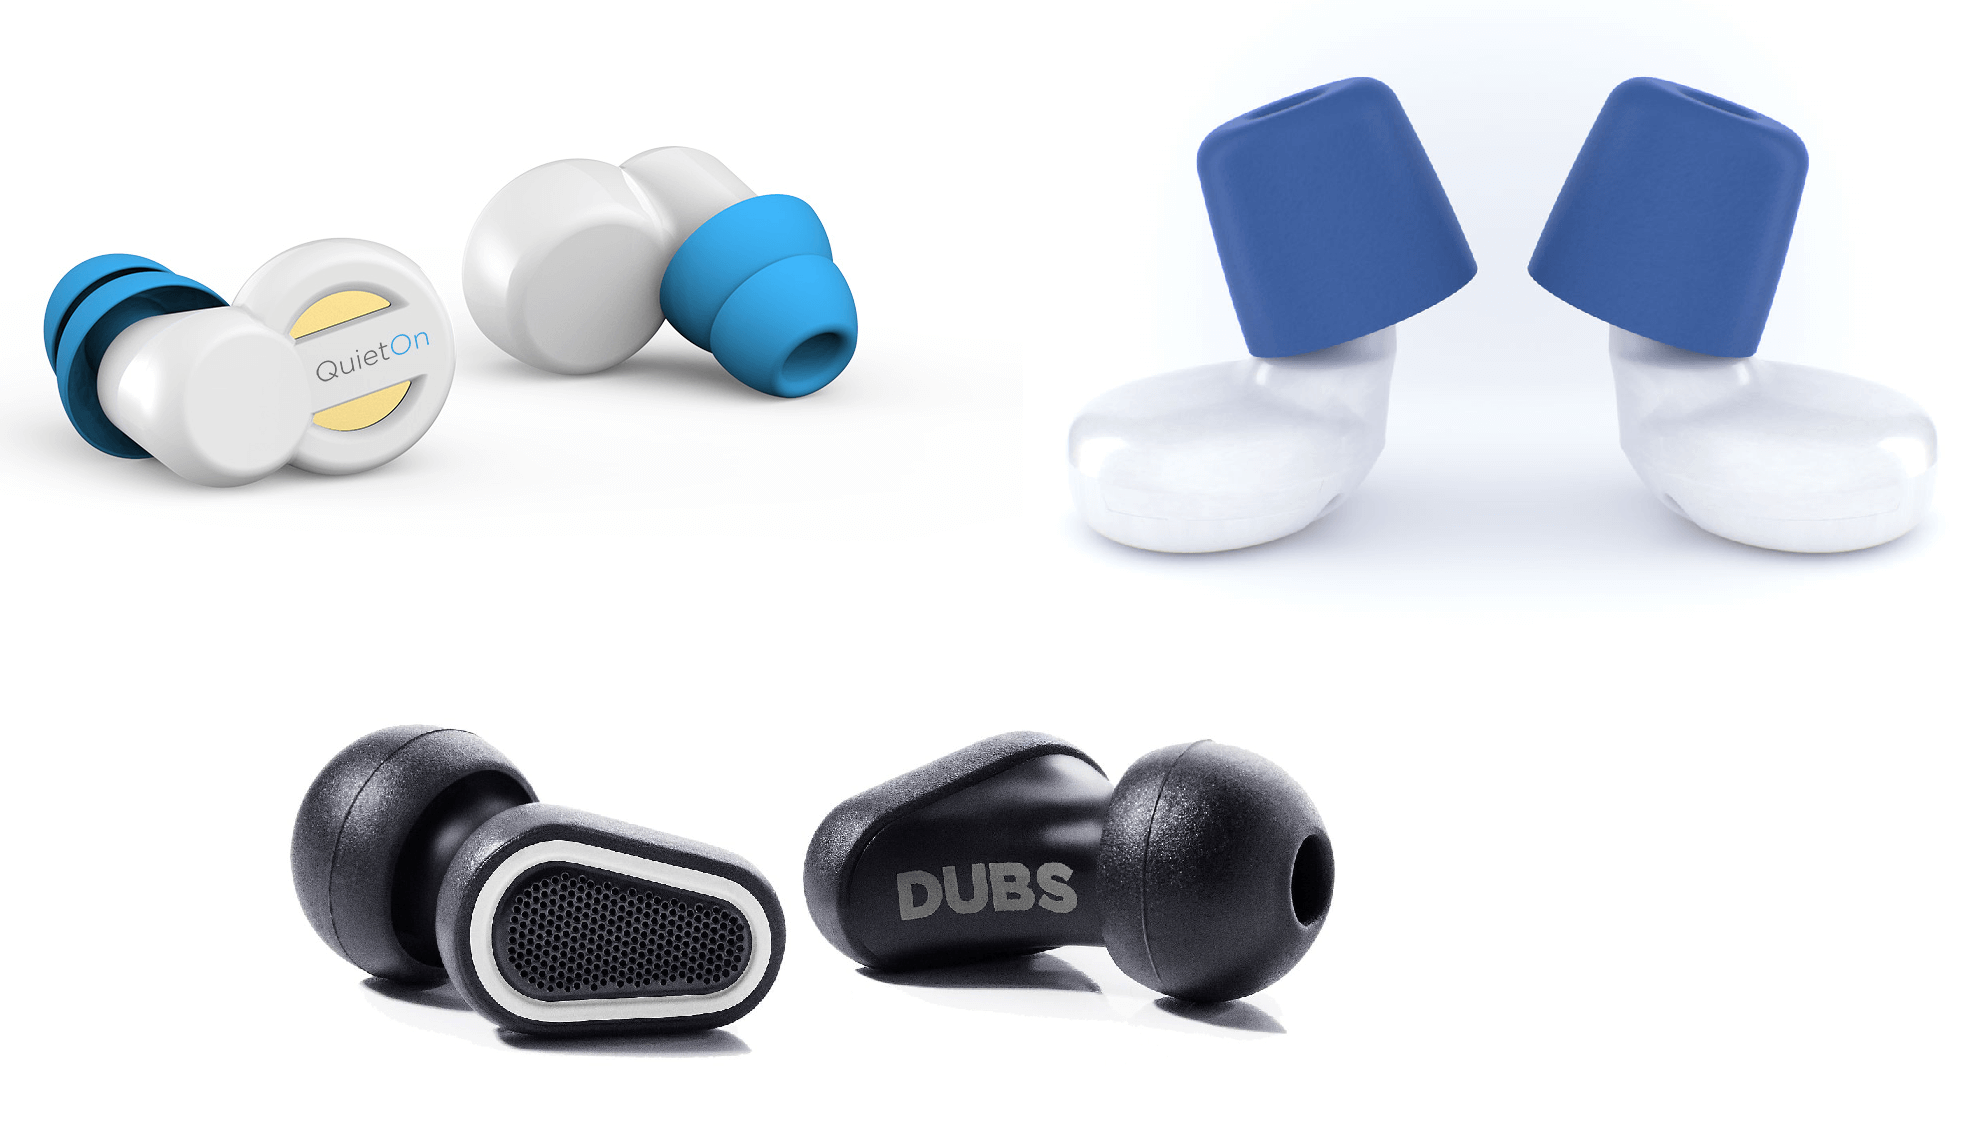 Smart earplugs